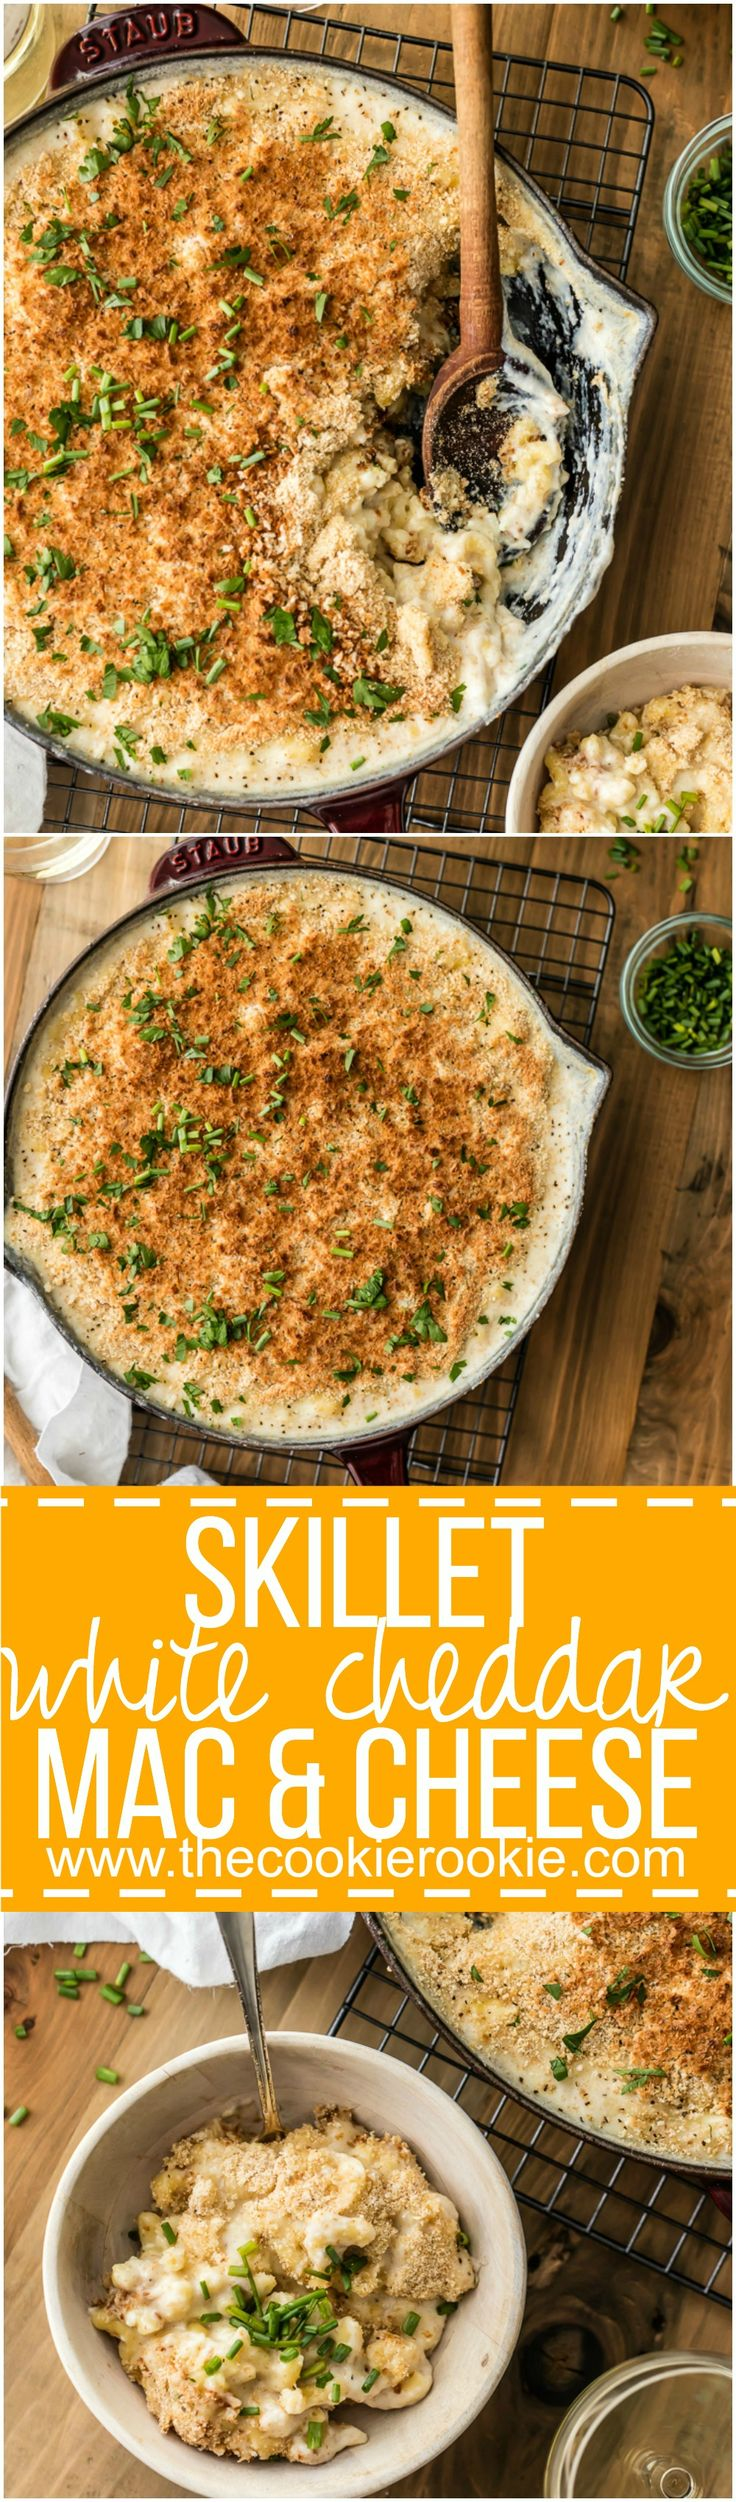 Large Batch Skillet White Cheddar Mac and Cheese